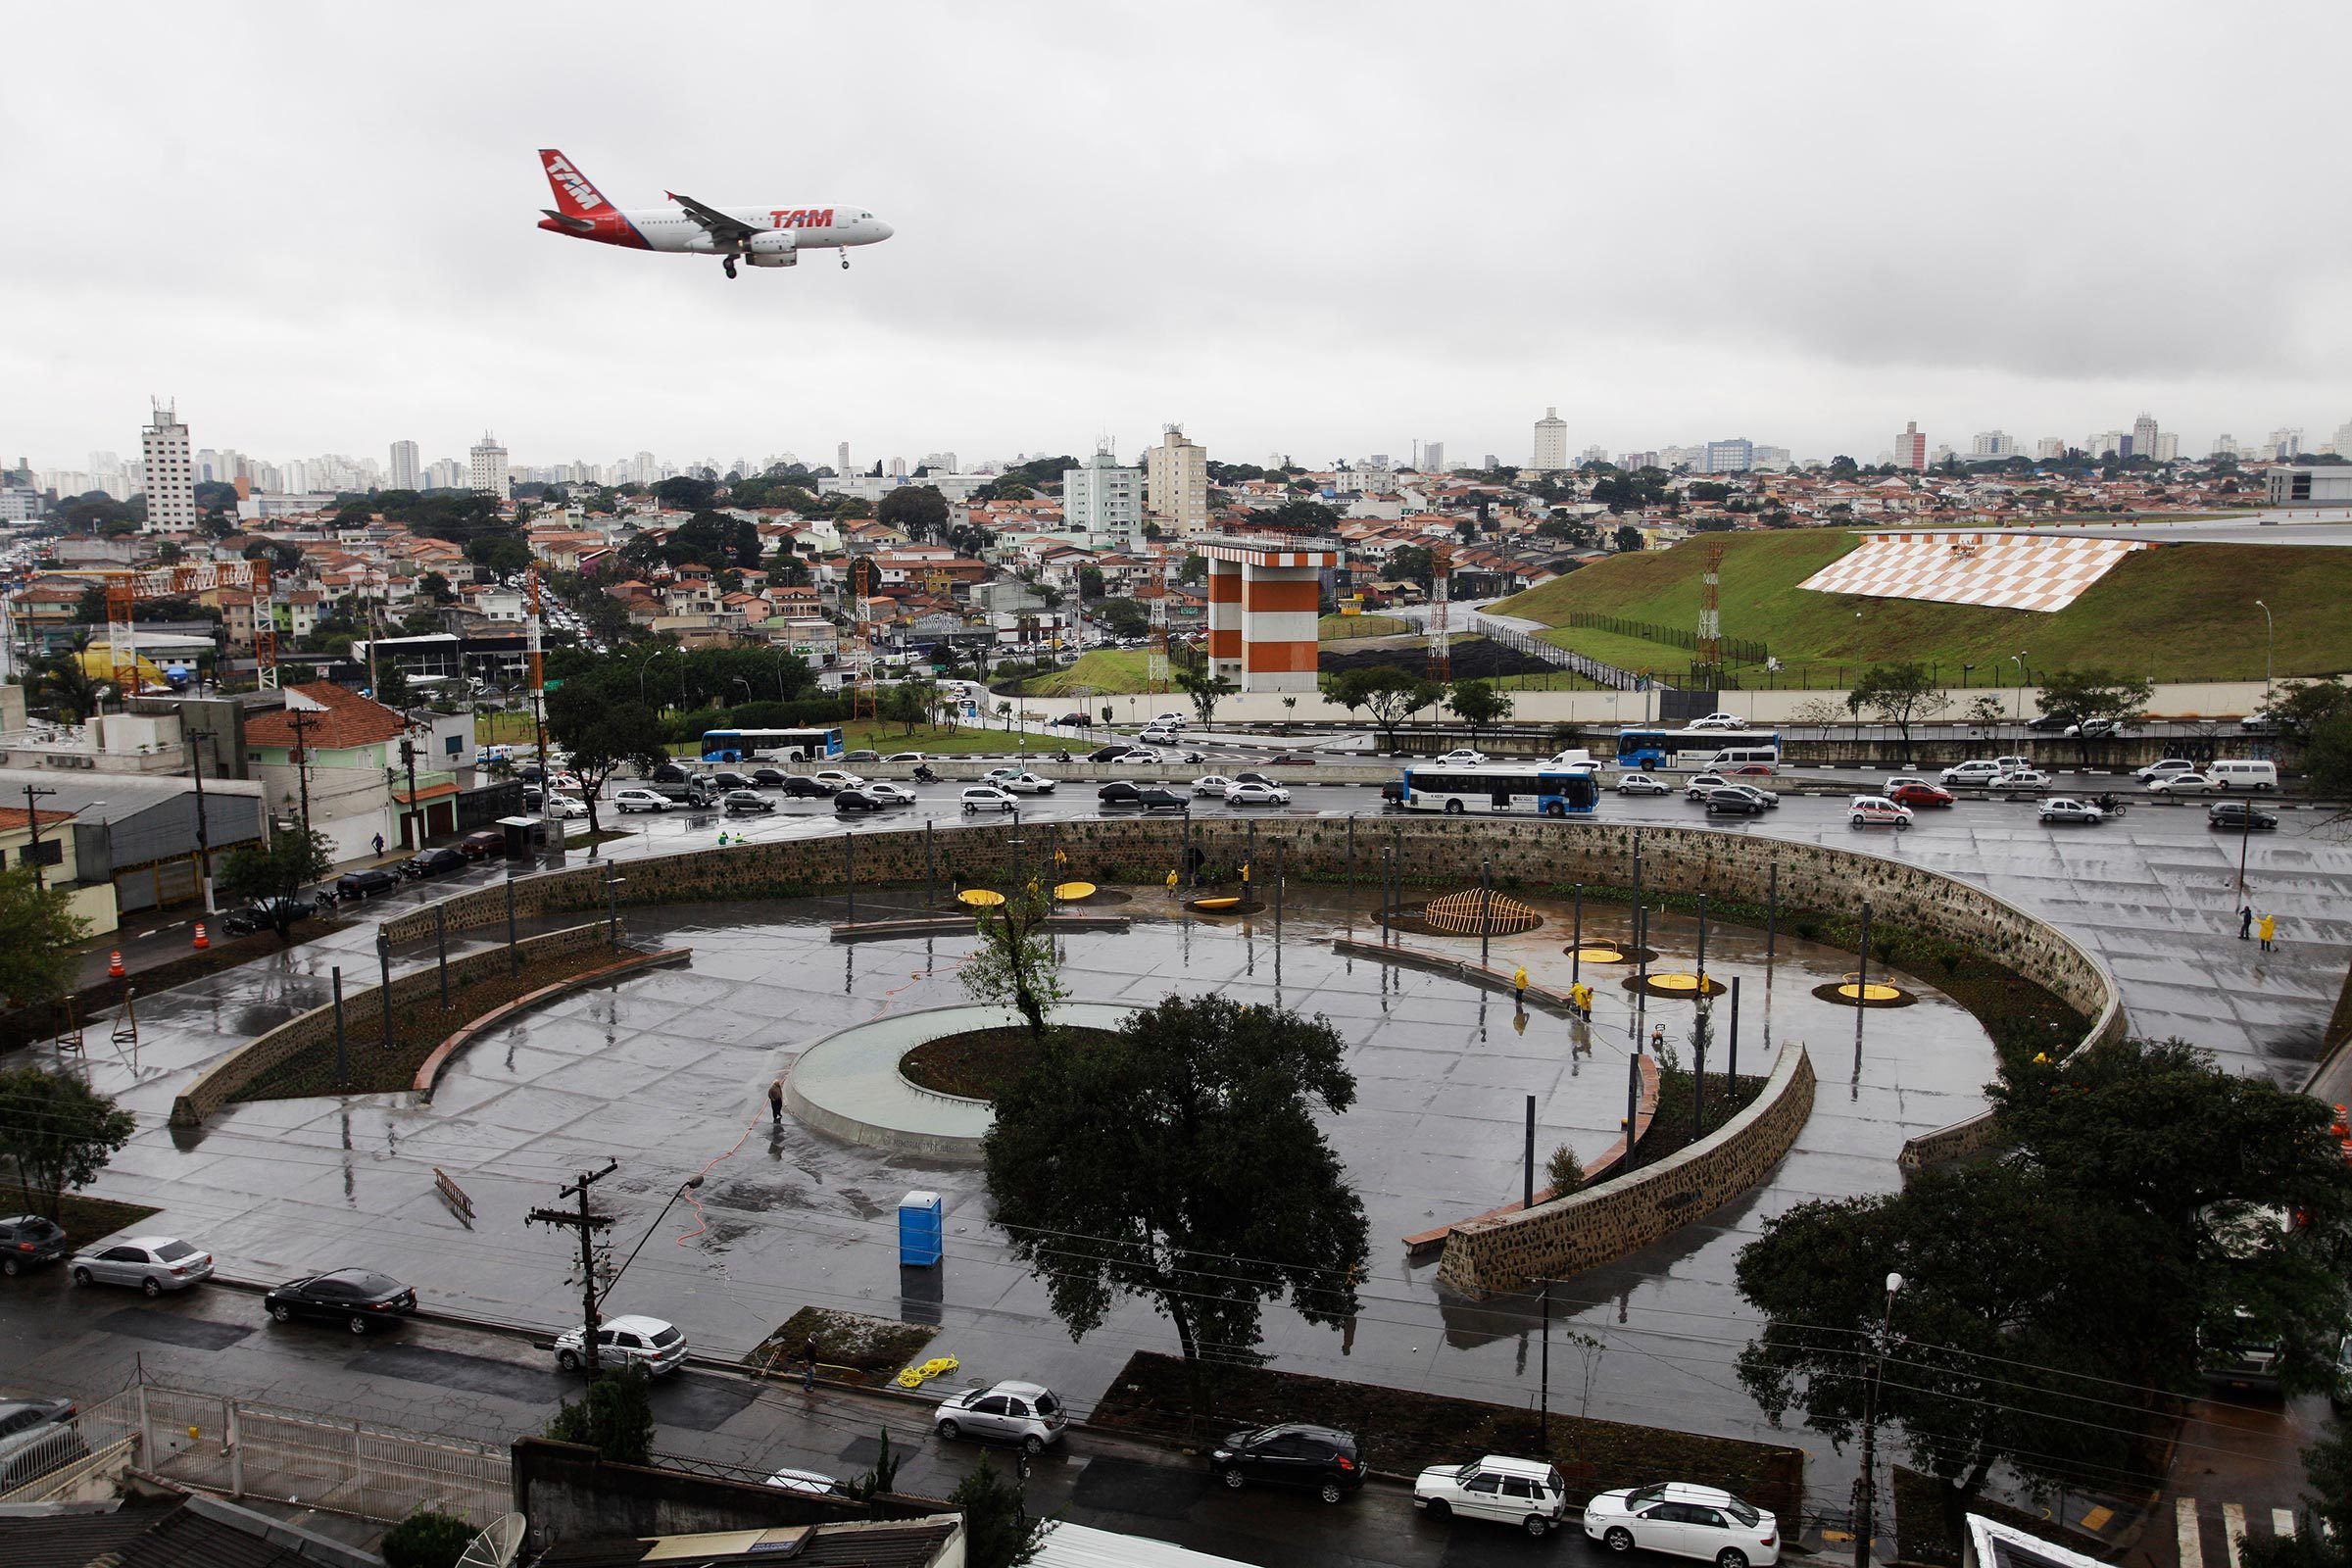 Sao Paulo, SP / Brazil - July 17, 2012: A plane of Brazil's TAM airline arrives in Congonhas airport past the site of the tragedy where an aircraft of TAM crashed and burst into flames in July17 2007.